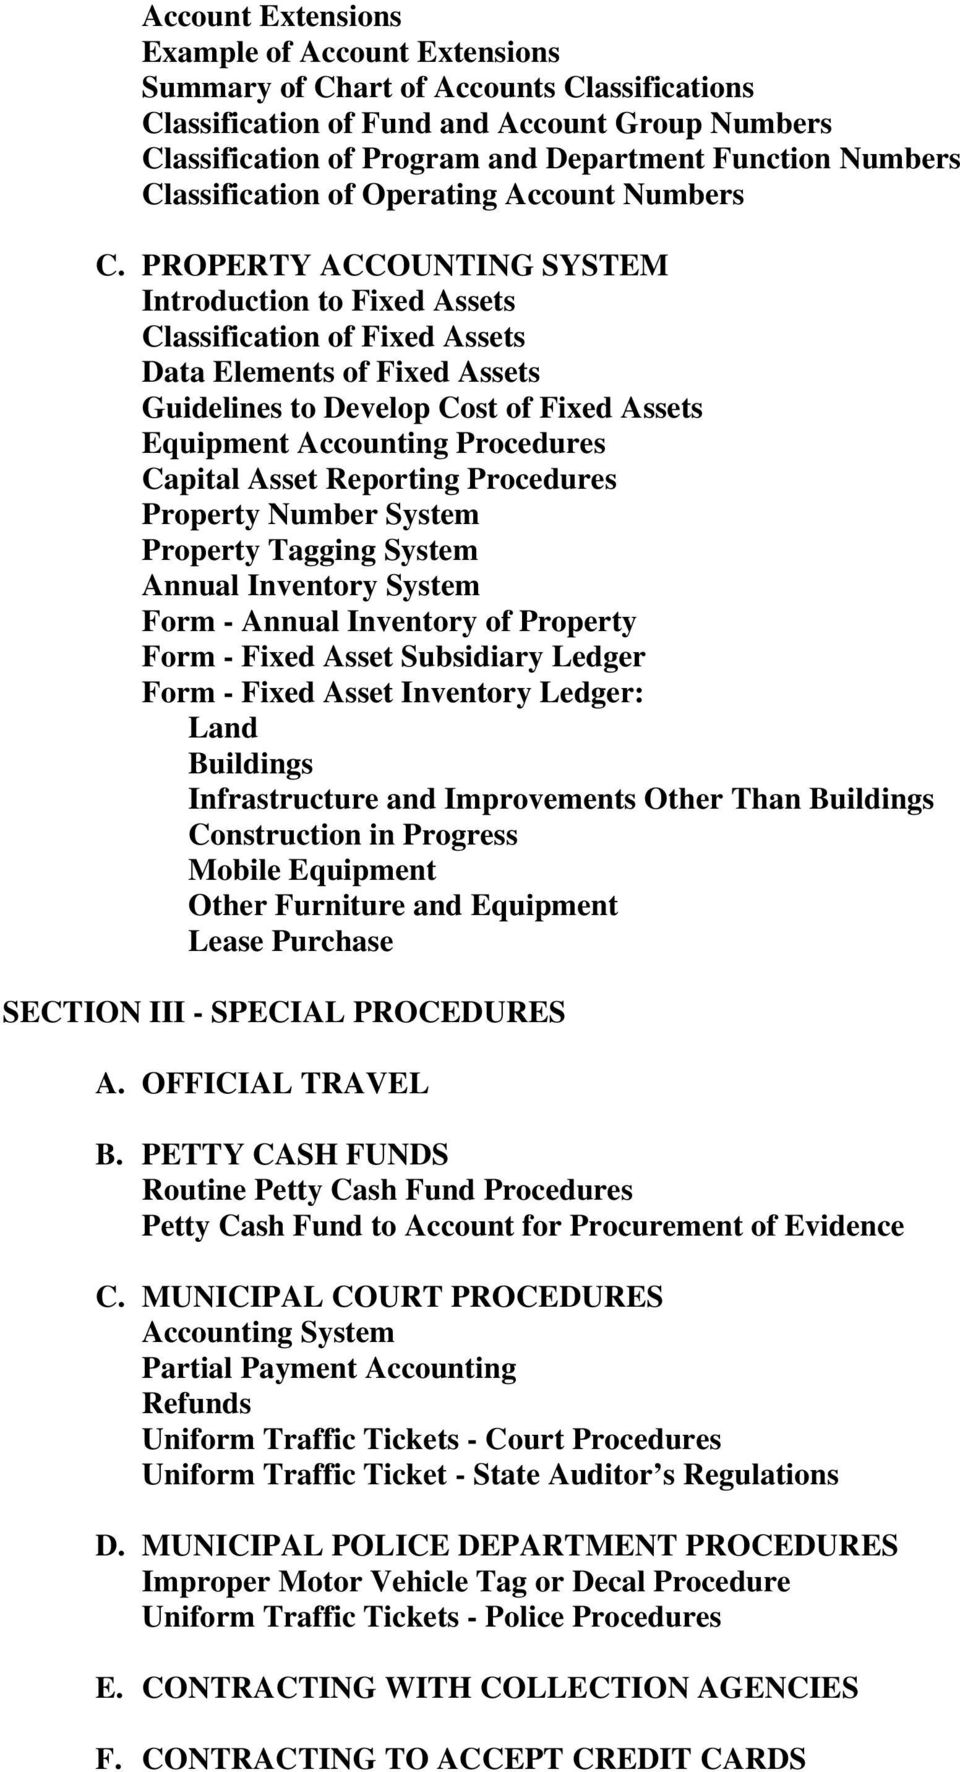 PROPERTY ACCOUNTING SYSTEM Introduction to Fixed Assets Classification of Fixed Assets Data Elements of Fixed Assets Guidelines to Develop Cost of Fixed Assets Equipment Accounting Procedures Capital